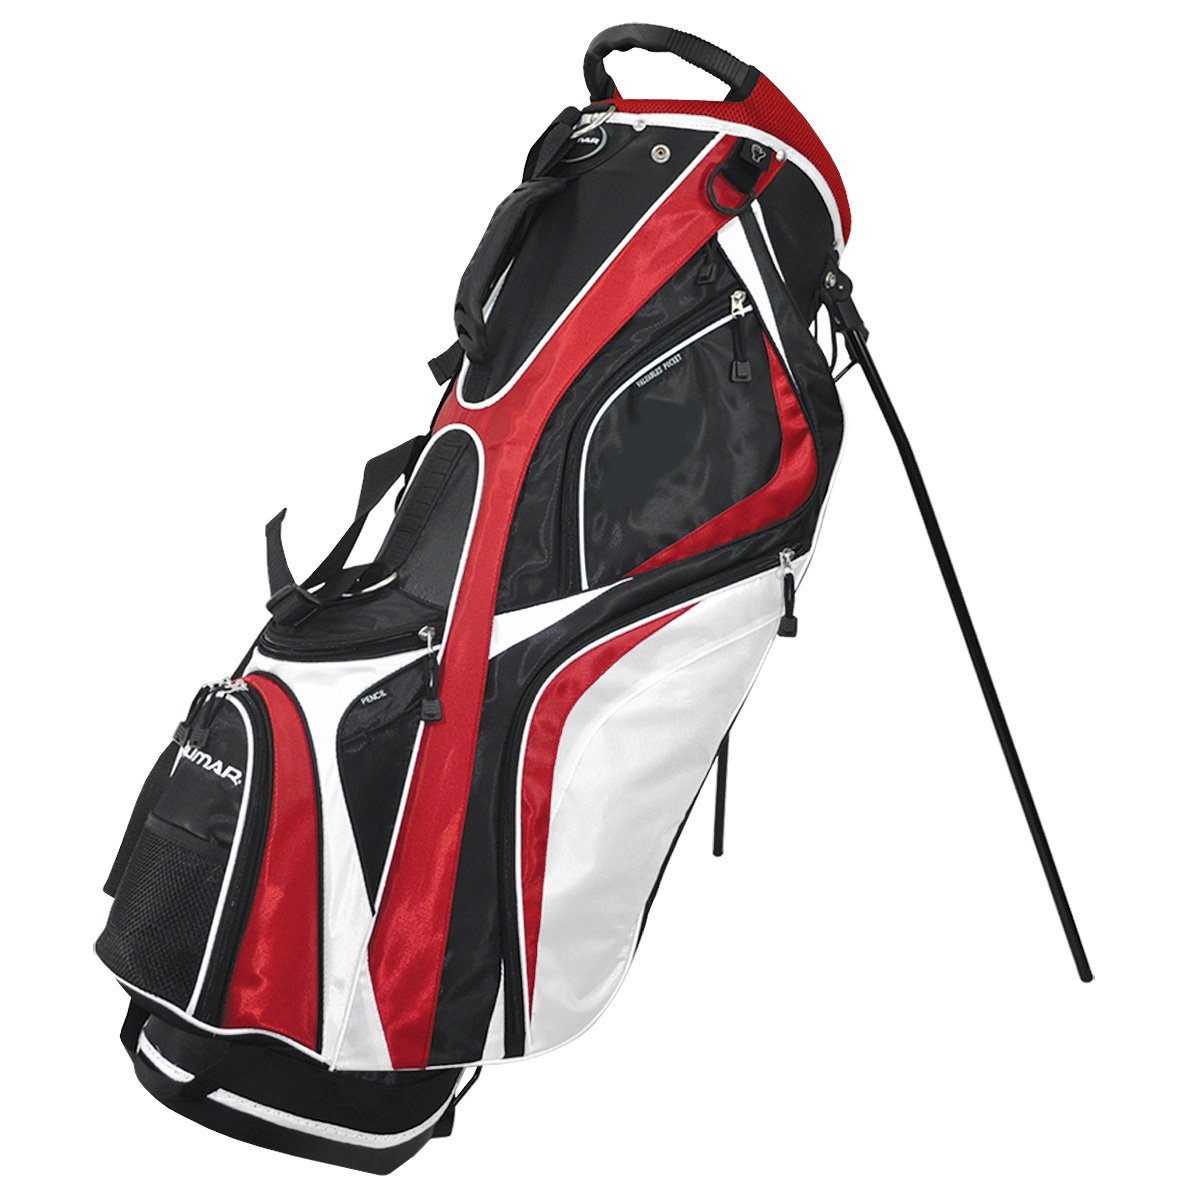 Mens Orlimar 2014 OS 7.7 Golf Stand Bags